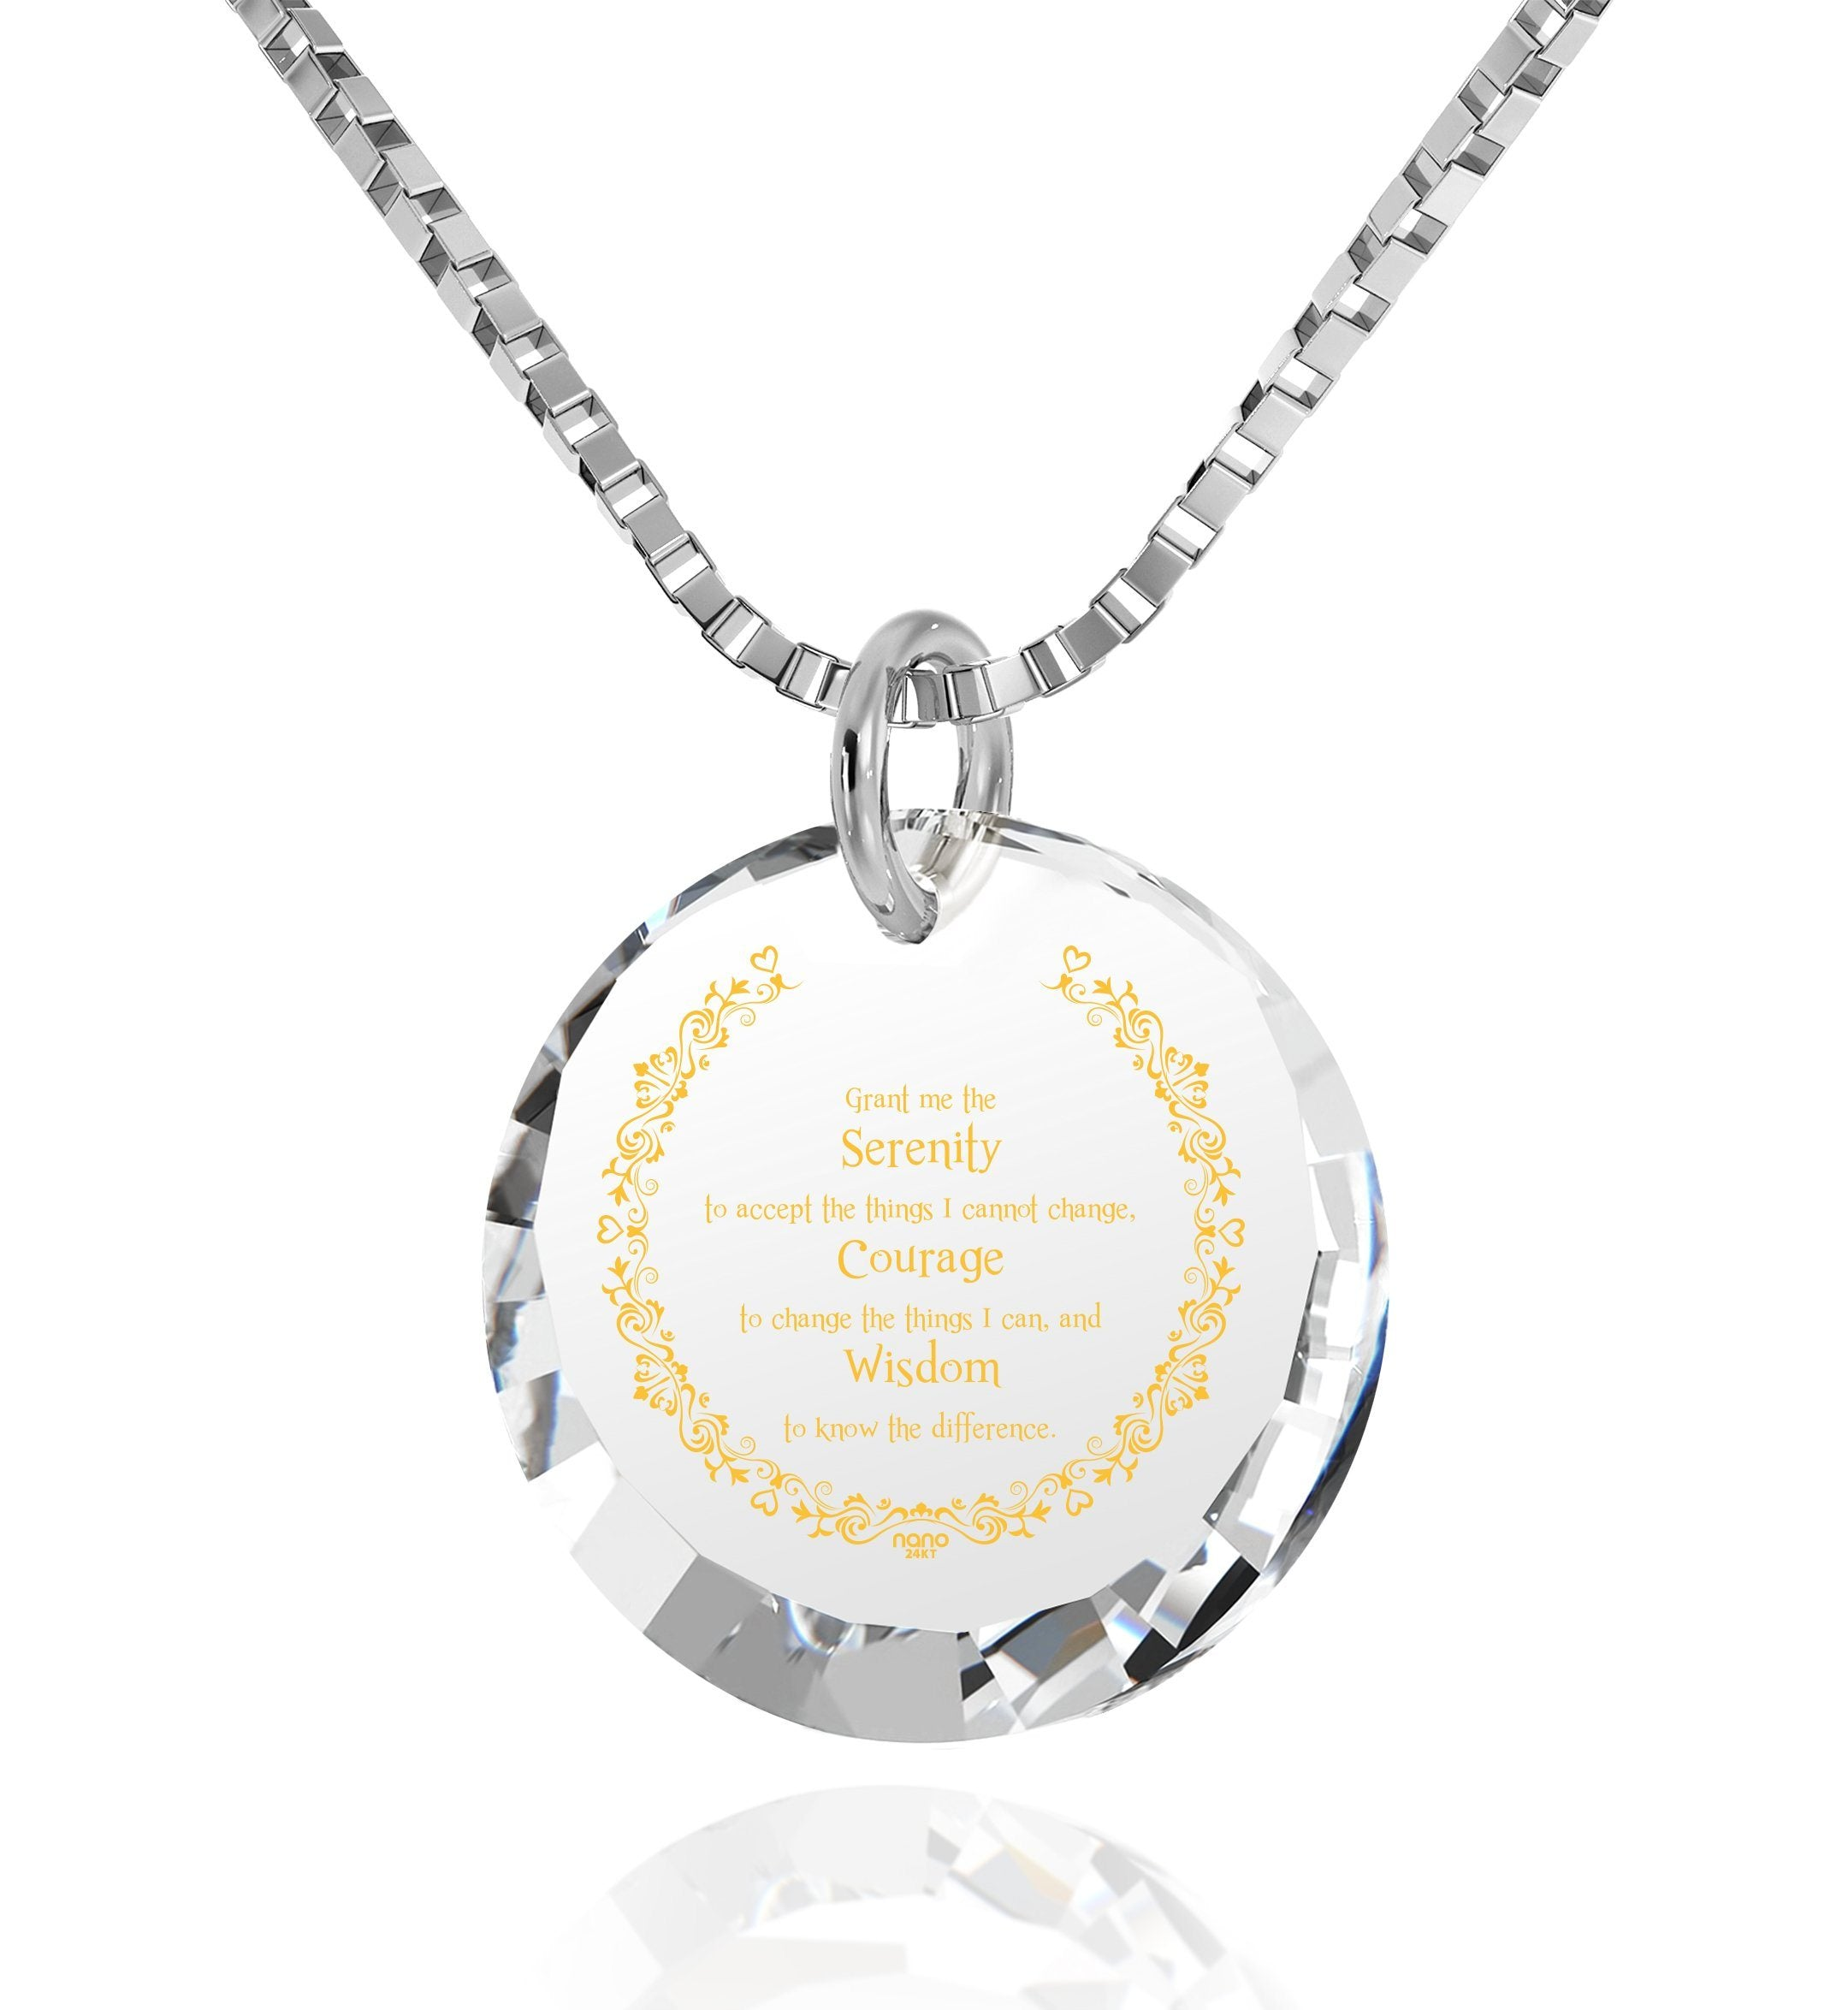 Serenity Prayer Jewelry: Top Gifts for Wife, Womens Presents, White Stone Necklace, Nano Jewelry